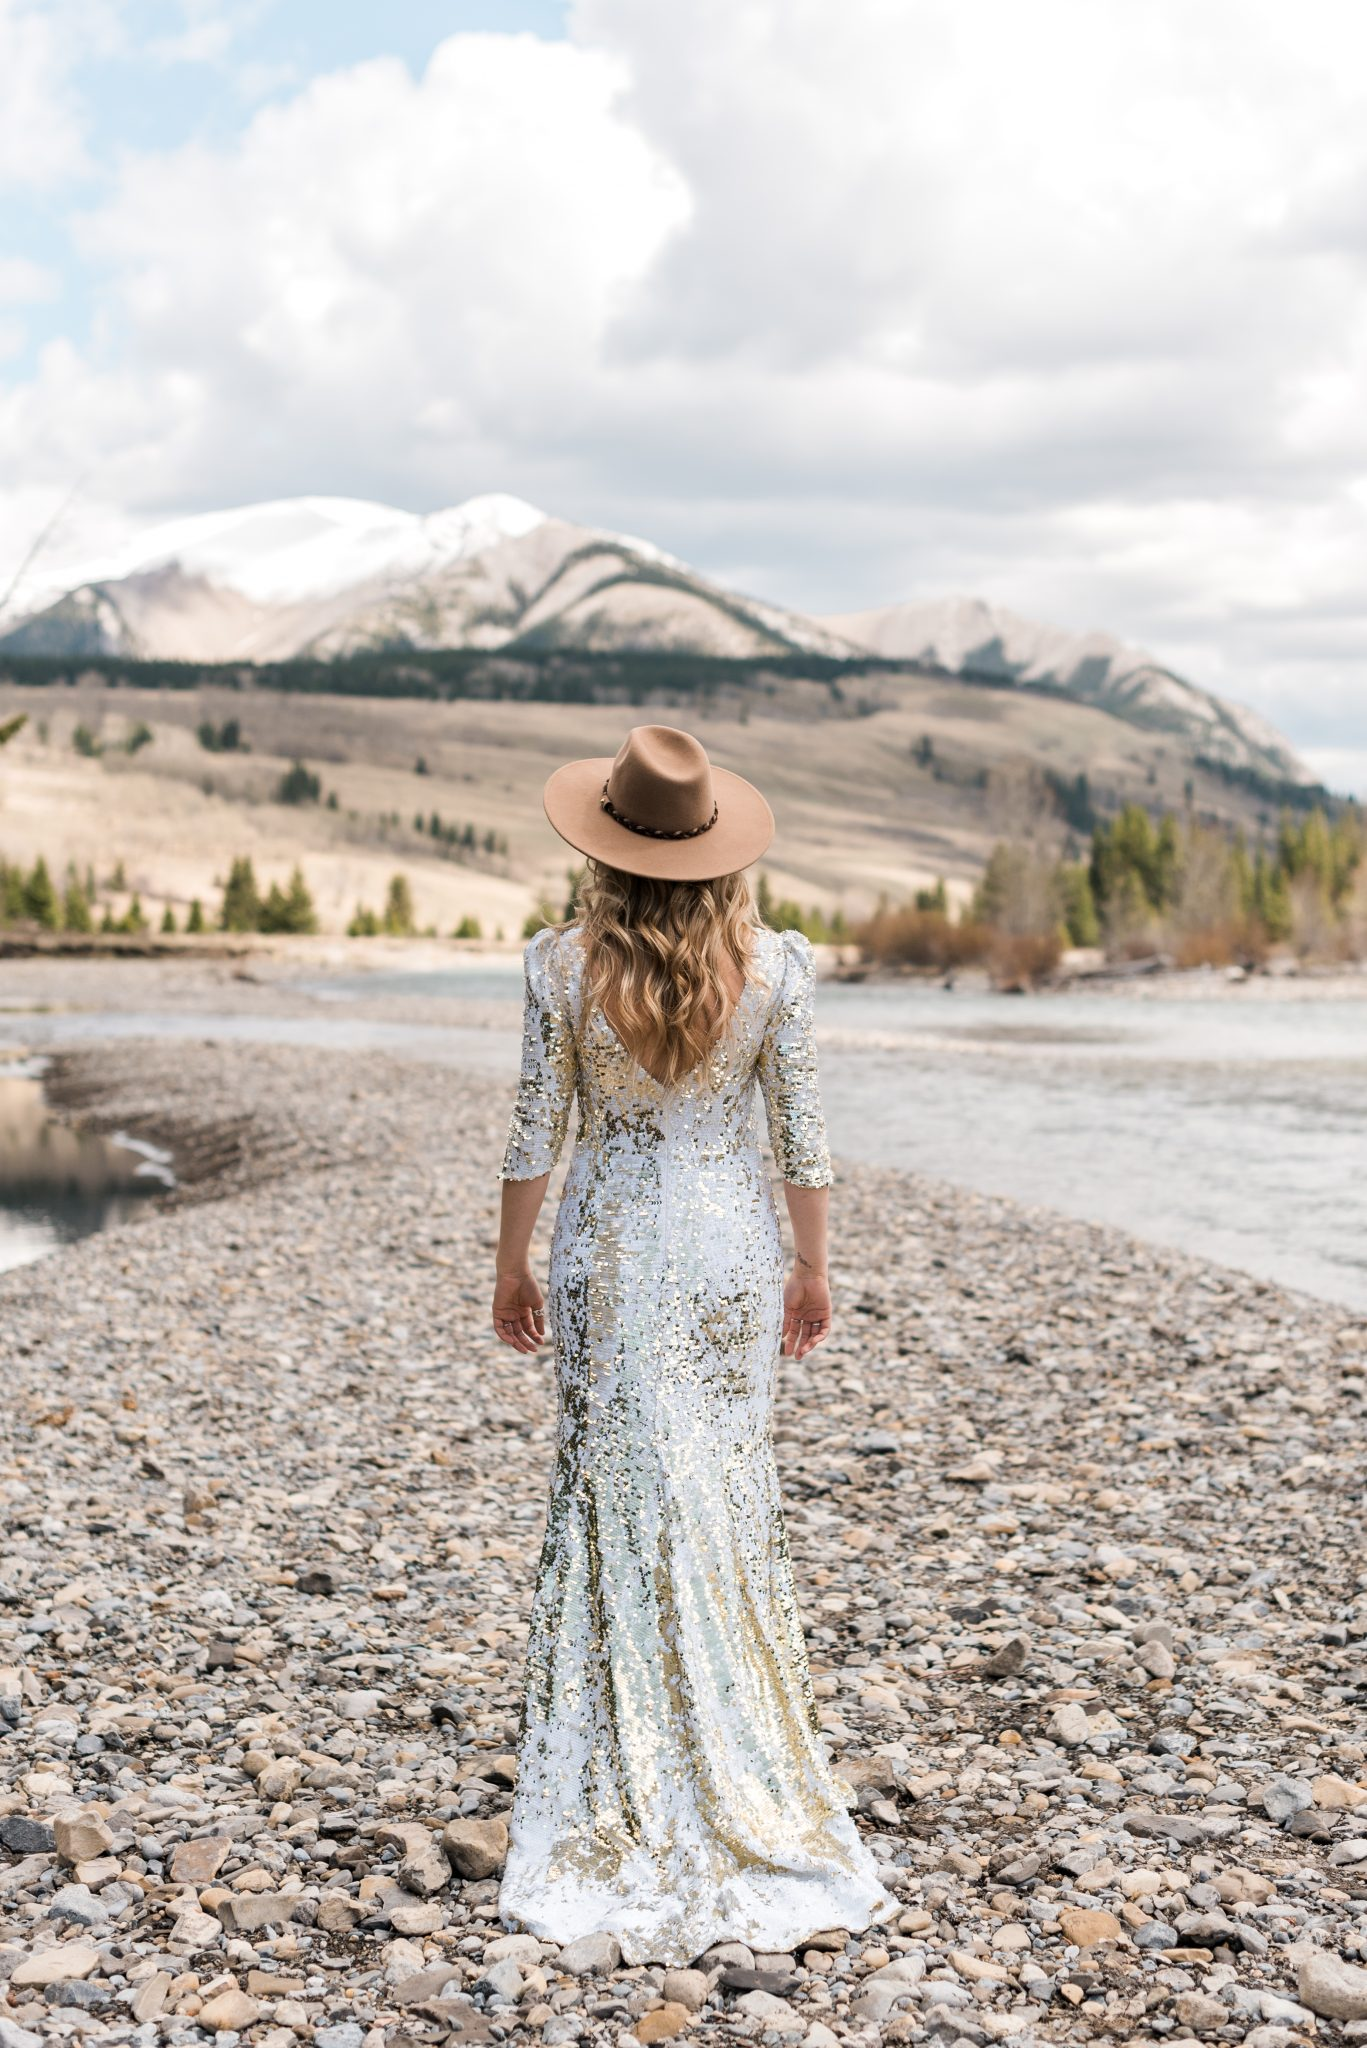 Canadian Cowgirl Bridal Inspiration in the Canadian Rockies with a white and gold sequin gown